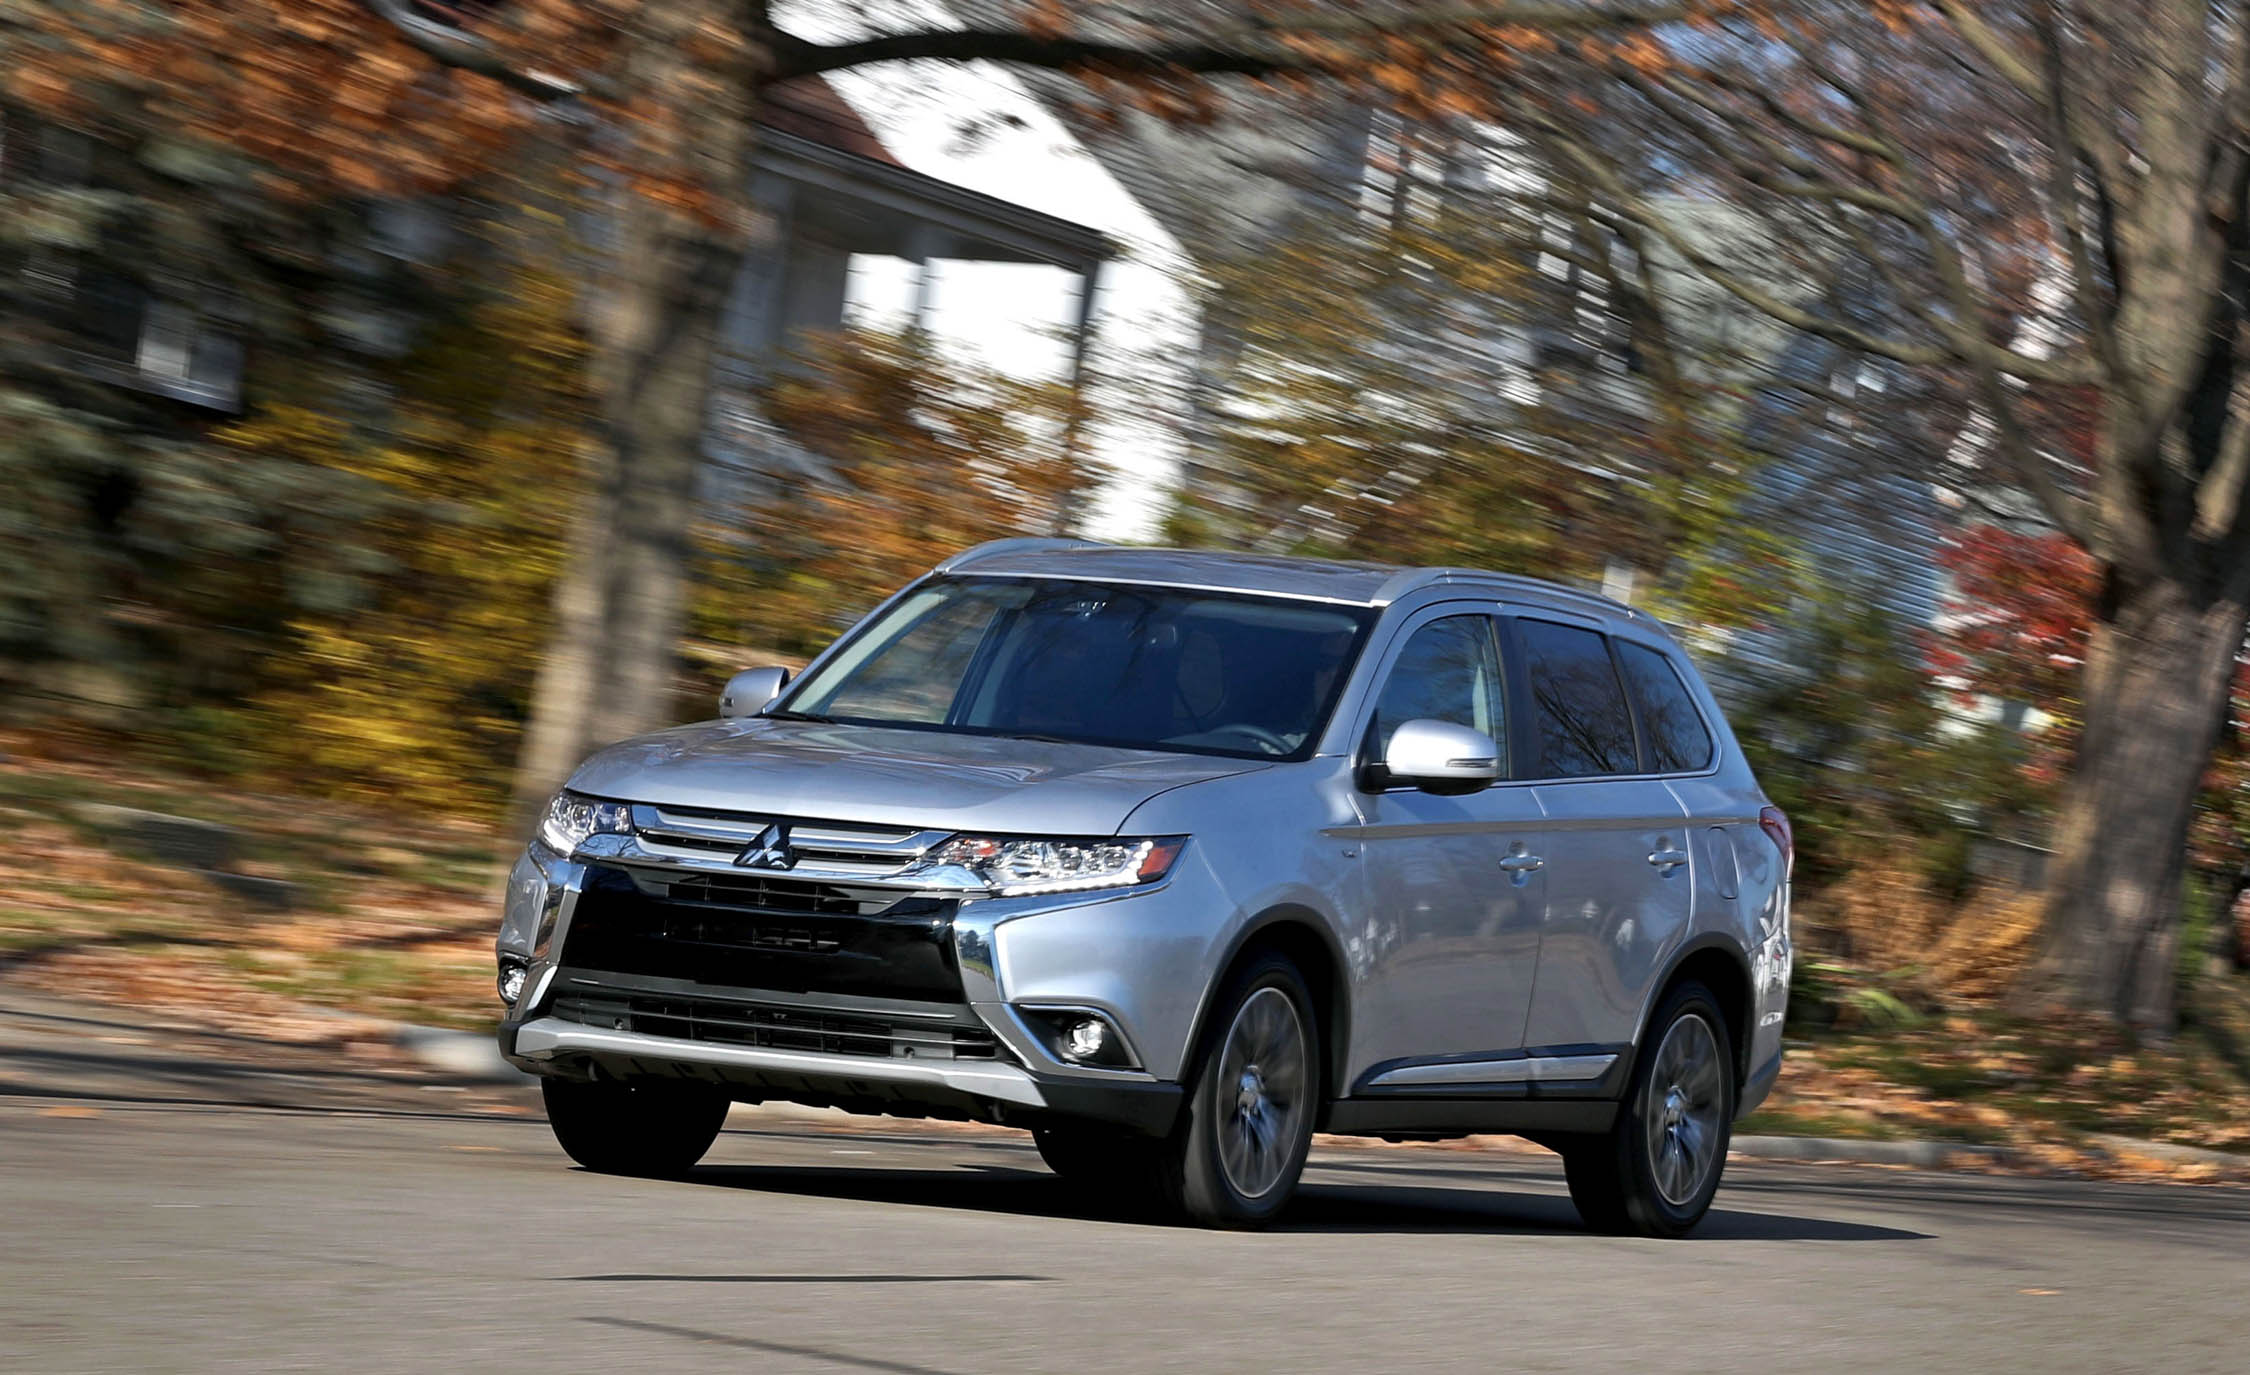 2017 Mitsubishi Outlander Gt (Photo 2 of 34)